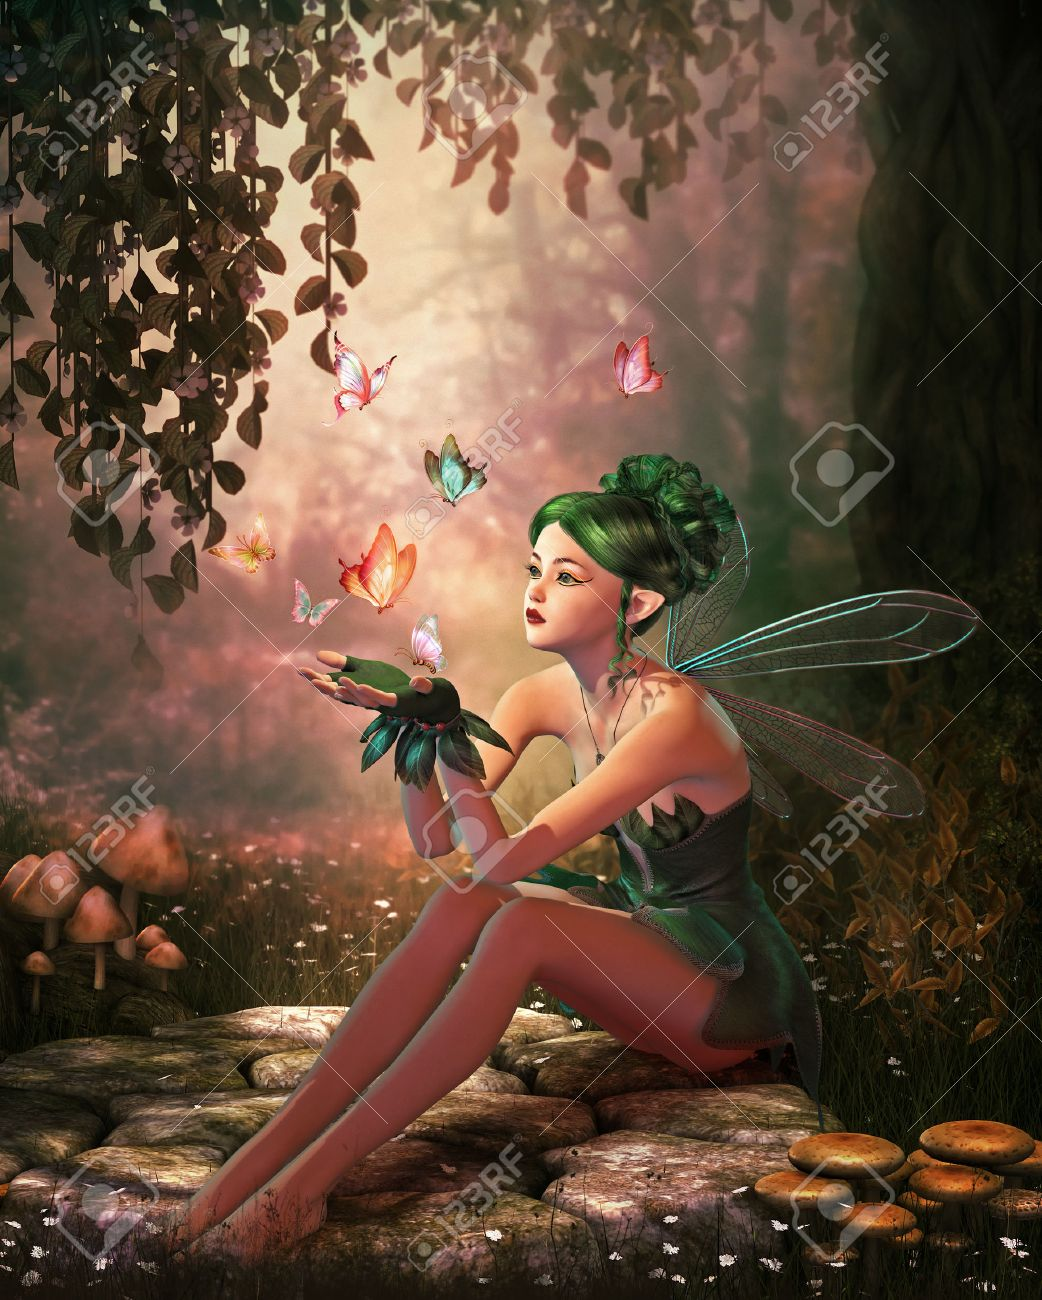 3d computer graphics of a fairy and flying butterflies